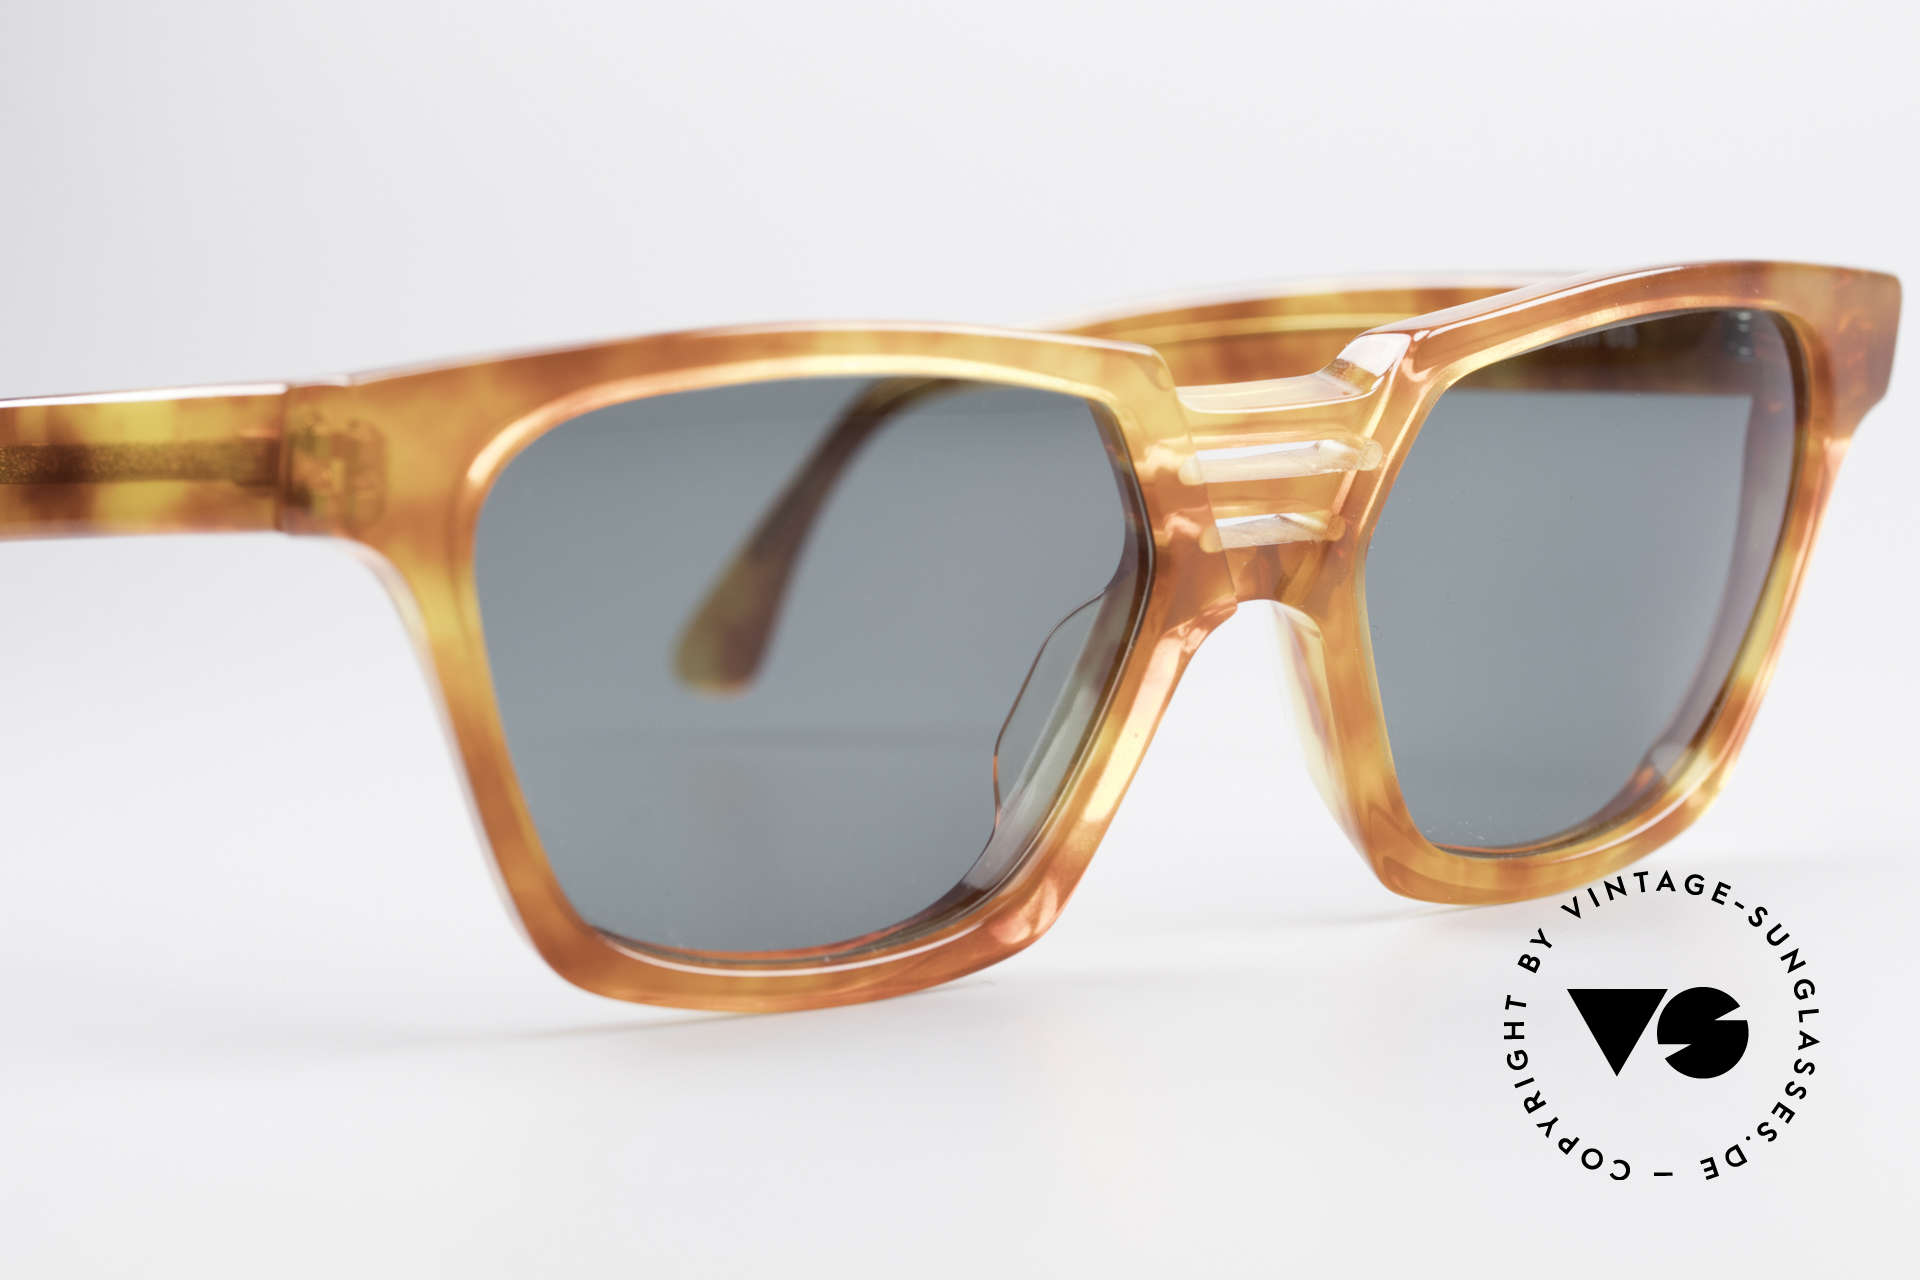 Alain Mikli 0145 / 033 Striking 1980's Sunglasses, NO RETRO SHADES, but a 30 years old ORIGINAL!!, Made for Men and Women